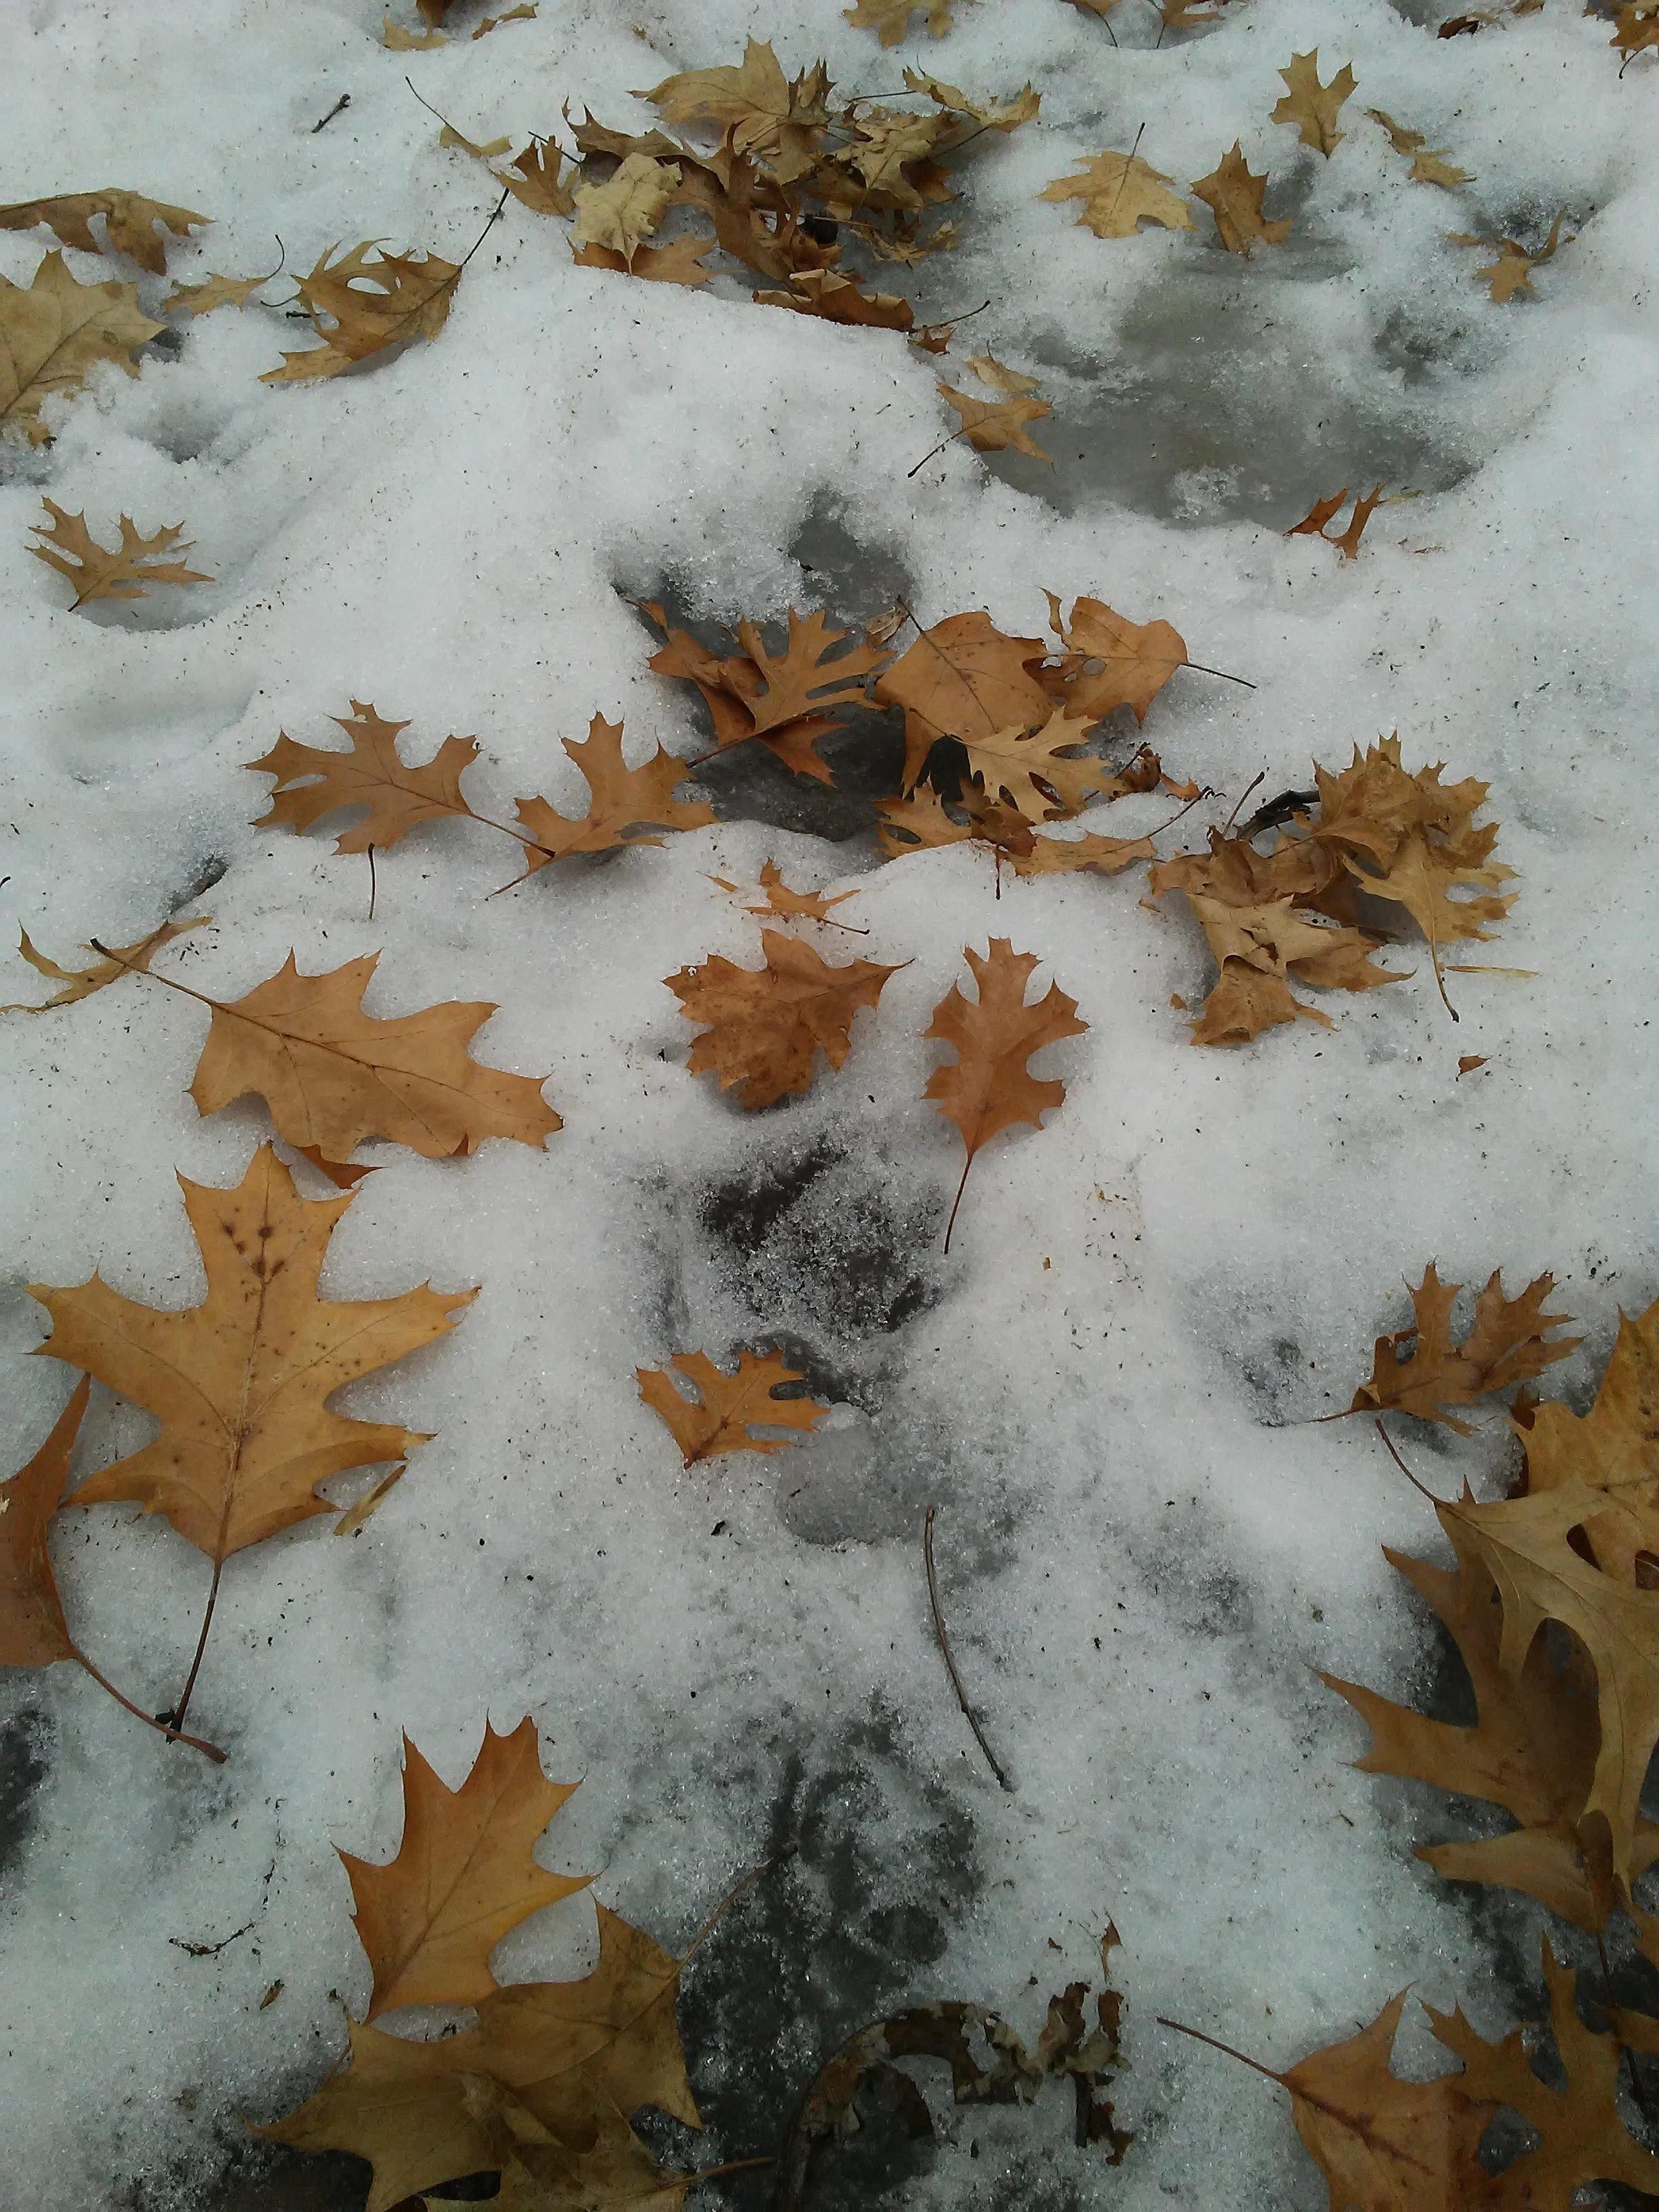 oak leaves in slush